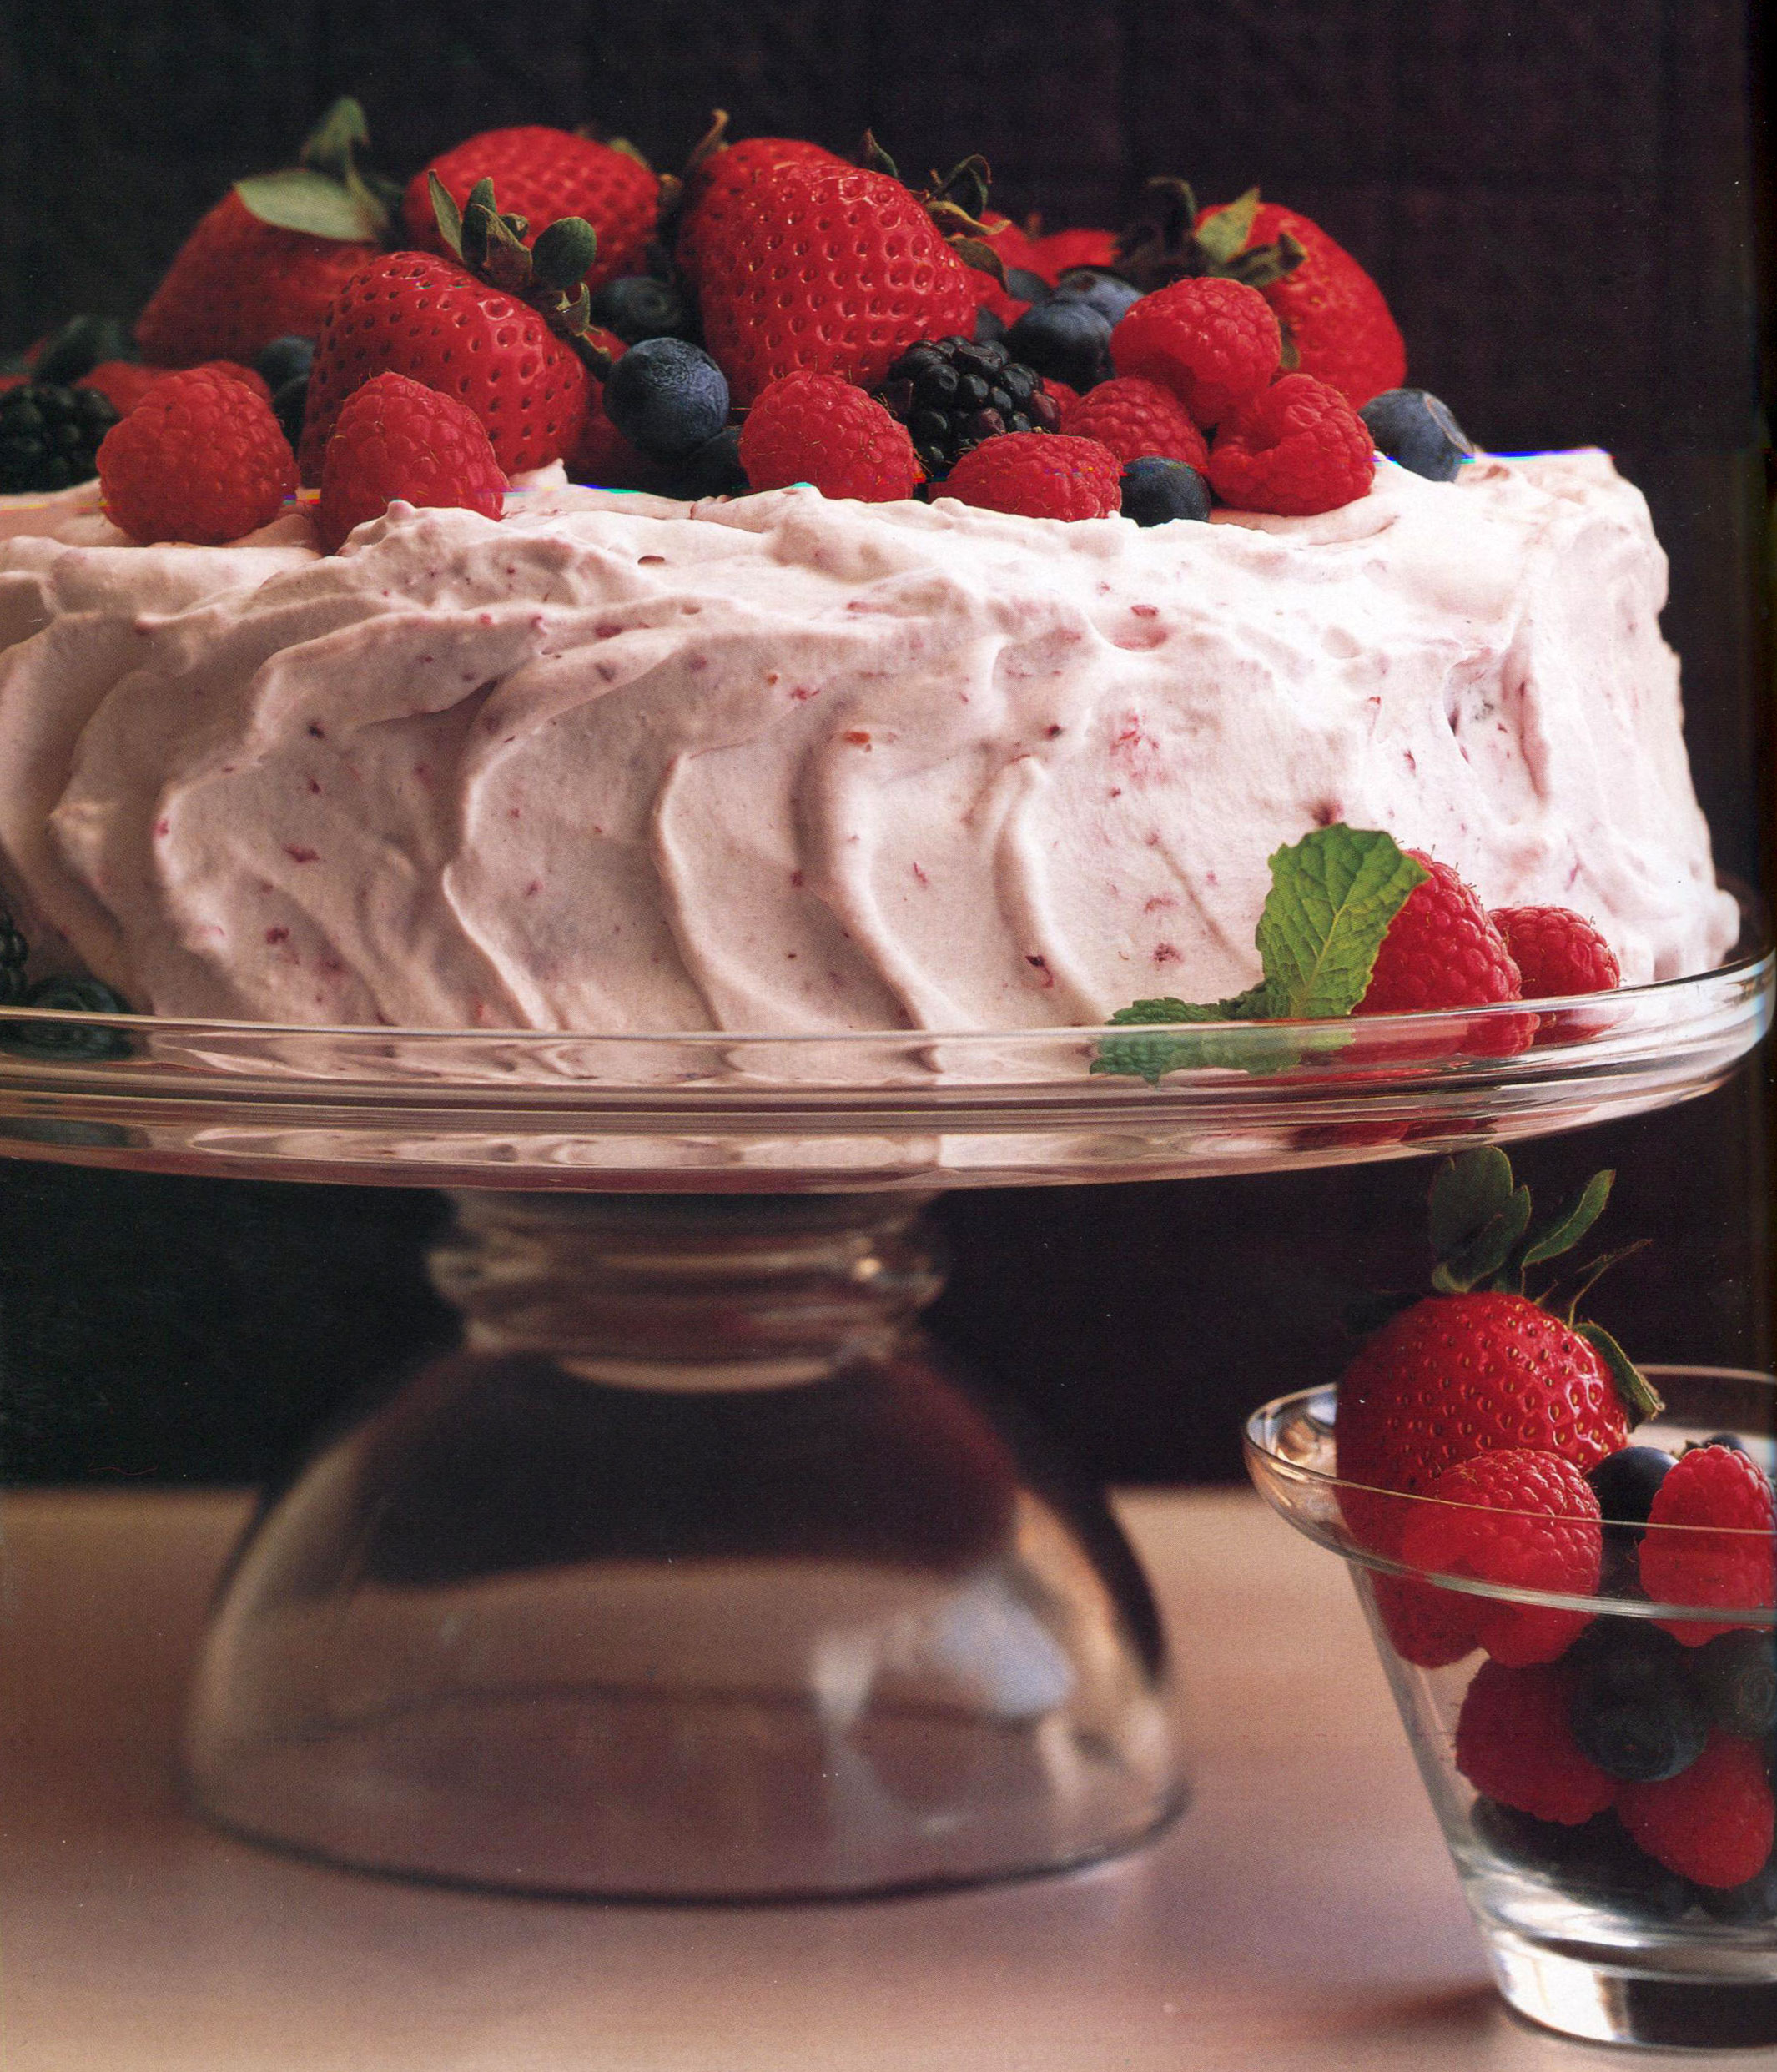 TBT Recipe: Old-Fashioned Berry Icebox Cake